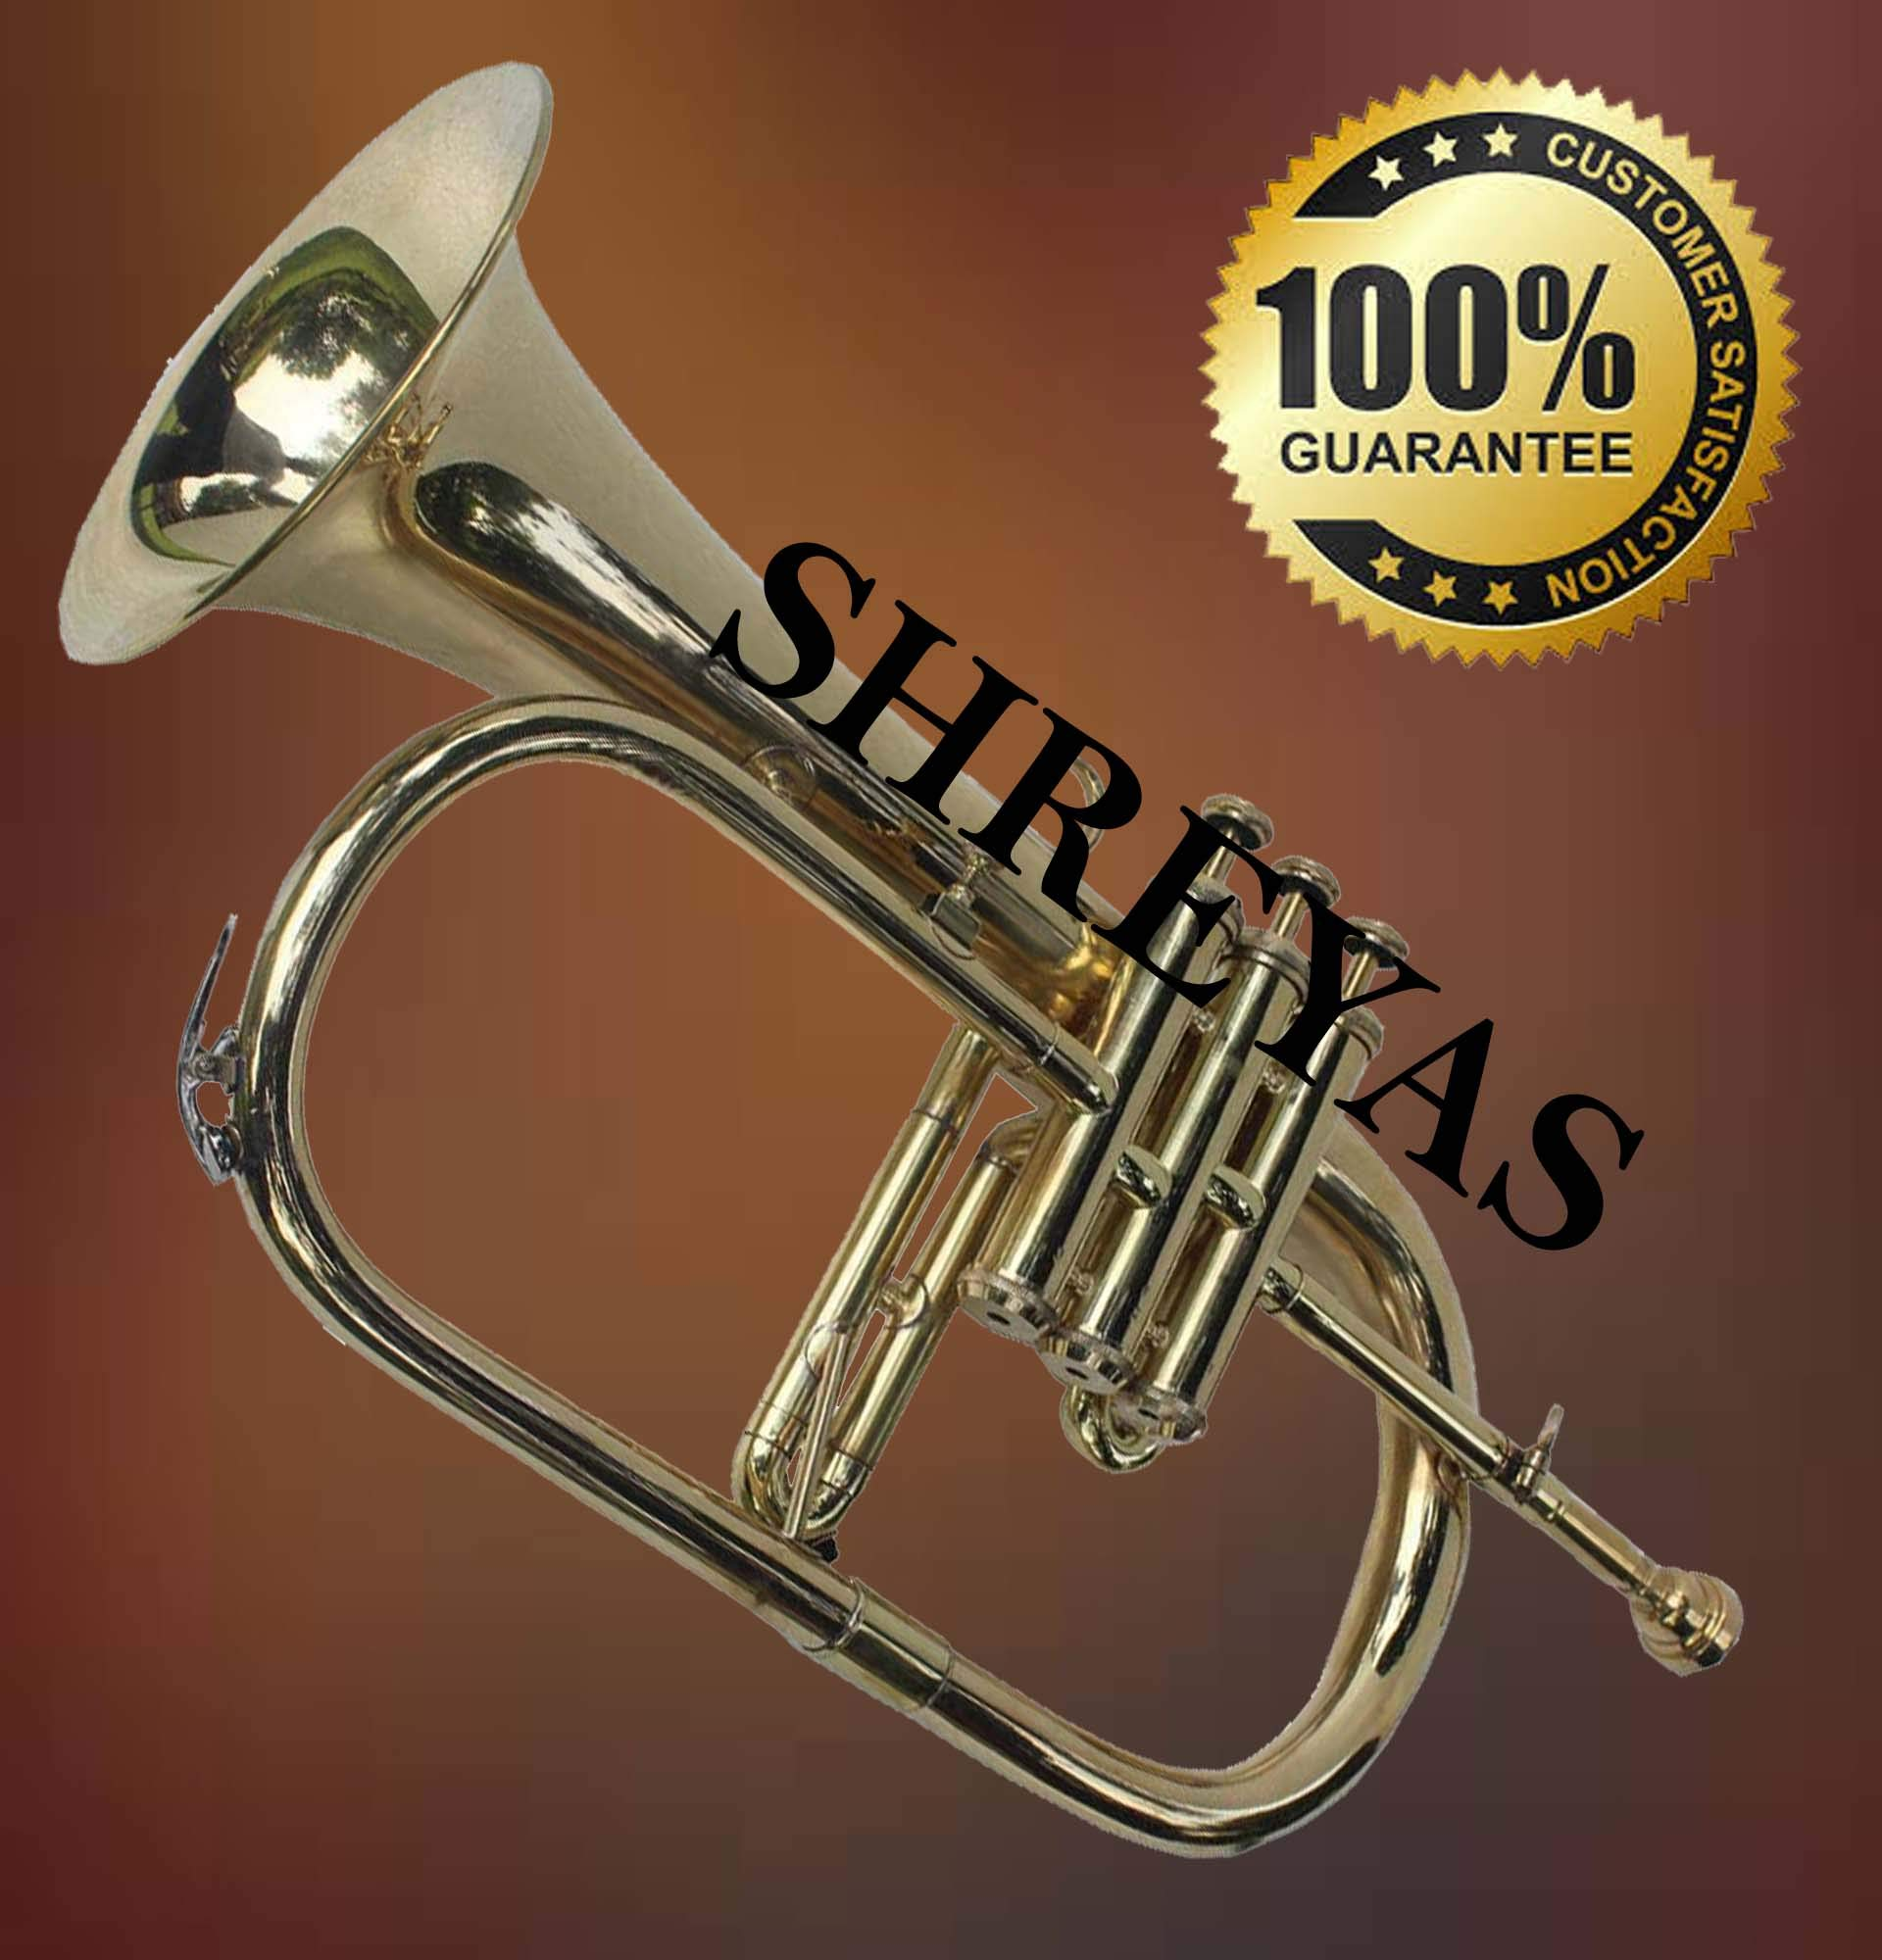 Shreyas Great Value 3-Valve Bb Natural Brass Flugel Horn Flugelhorn with Designer Hardcase VTR156 by SHREYAS (Image #4)